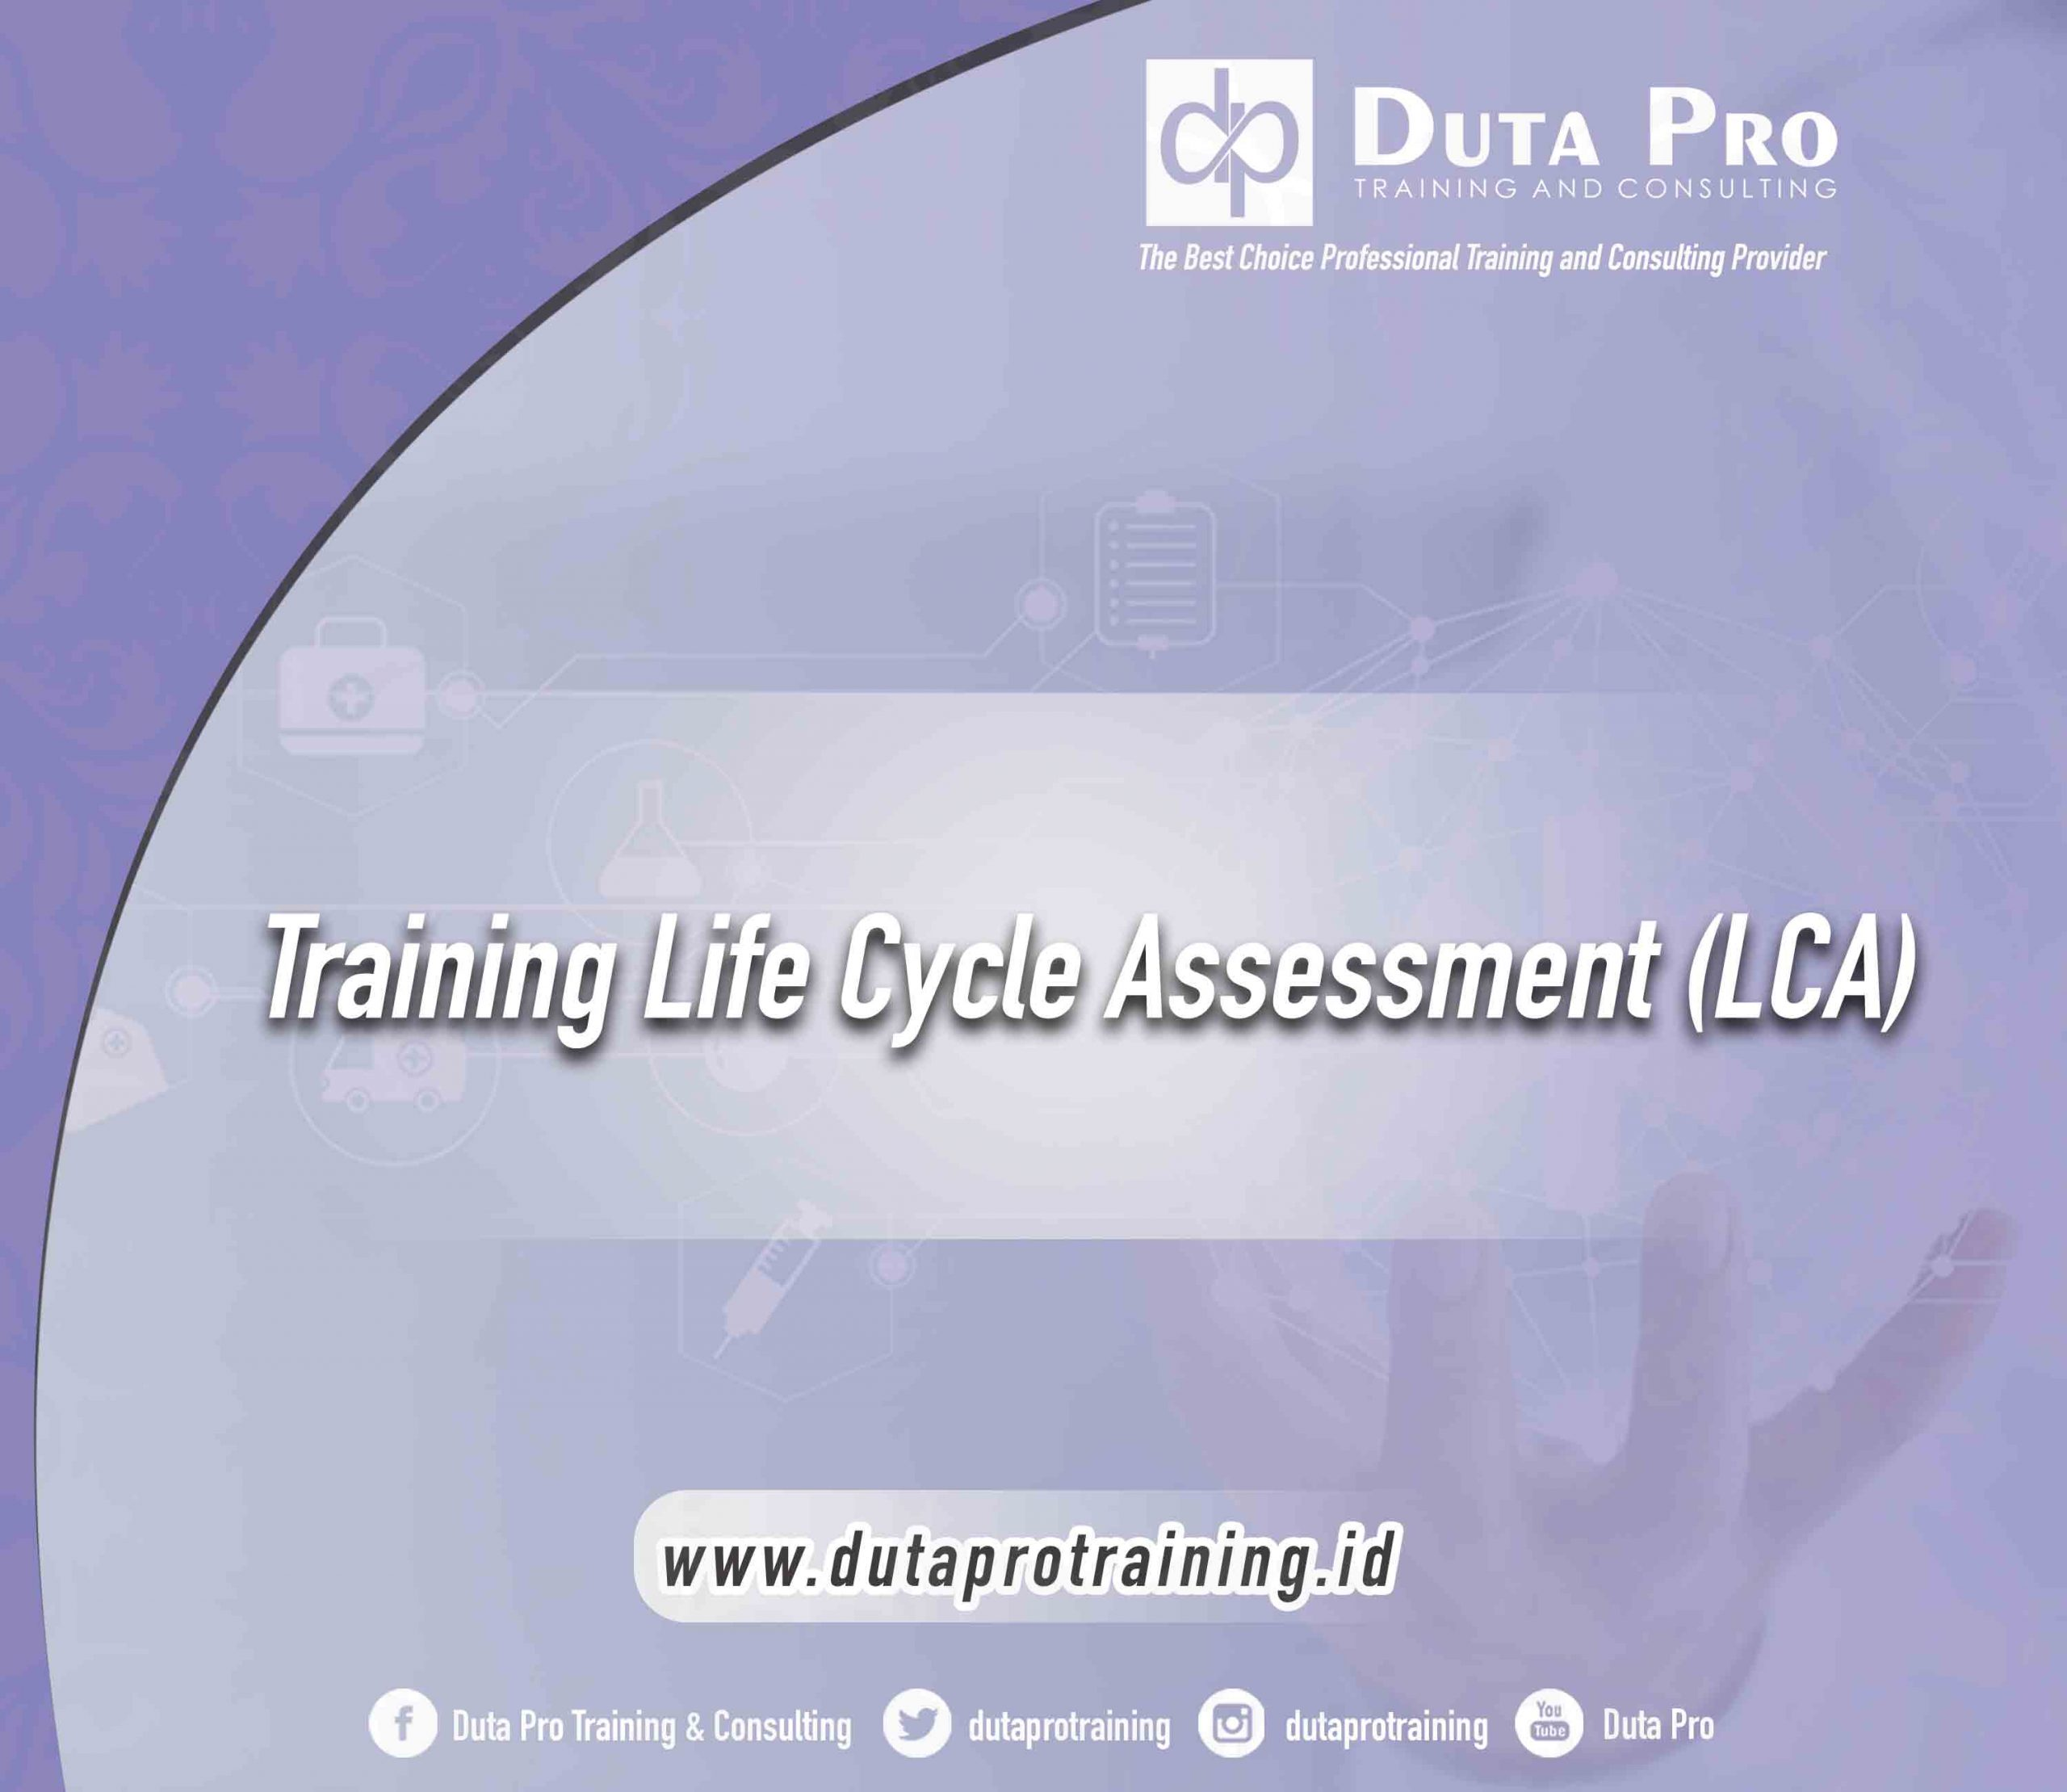 Training Life Cycle Assessment (LCA)